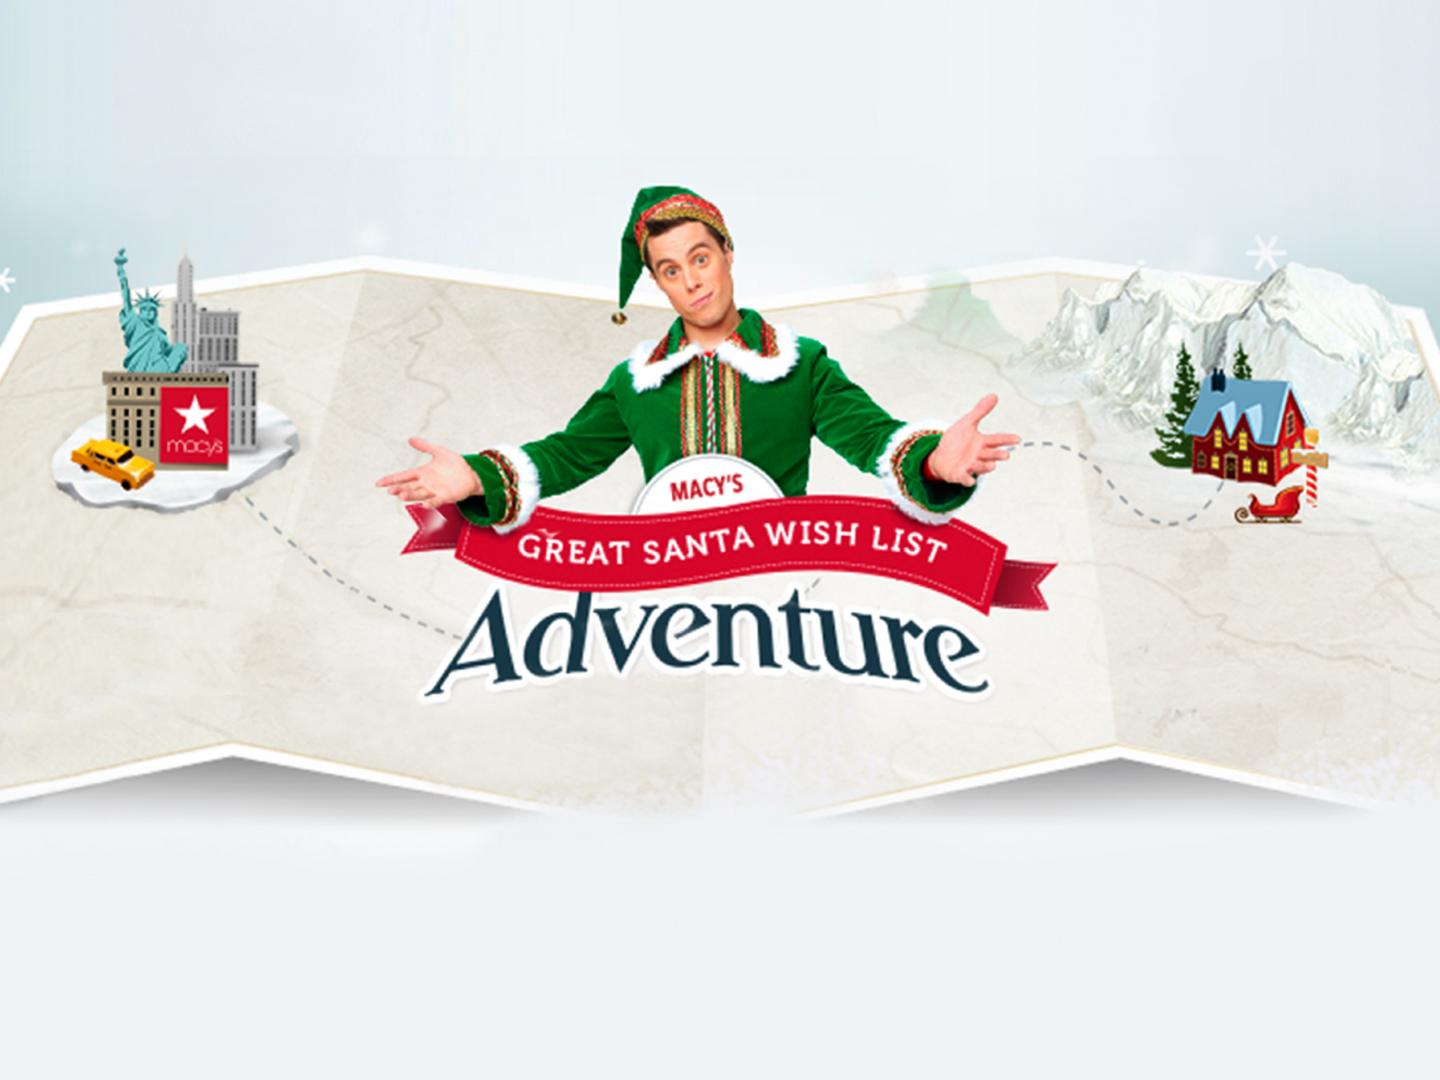 Macy's Great Santa Wish List Adventure Thumbnail